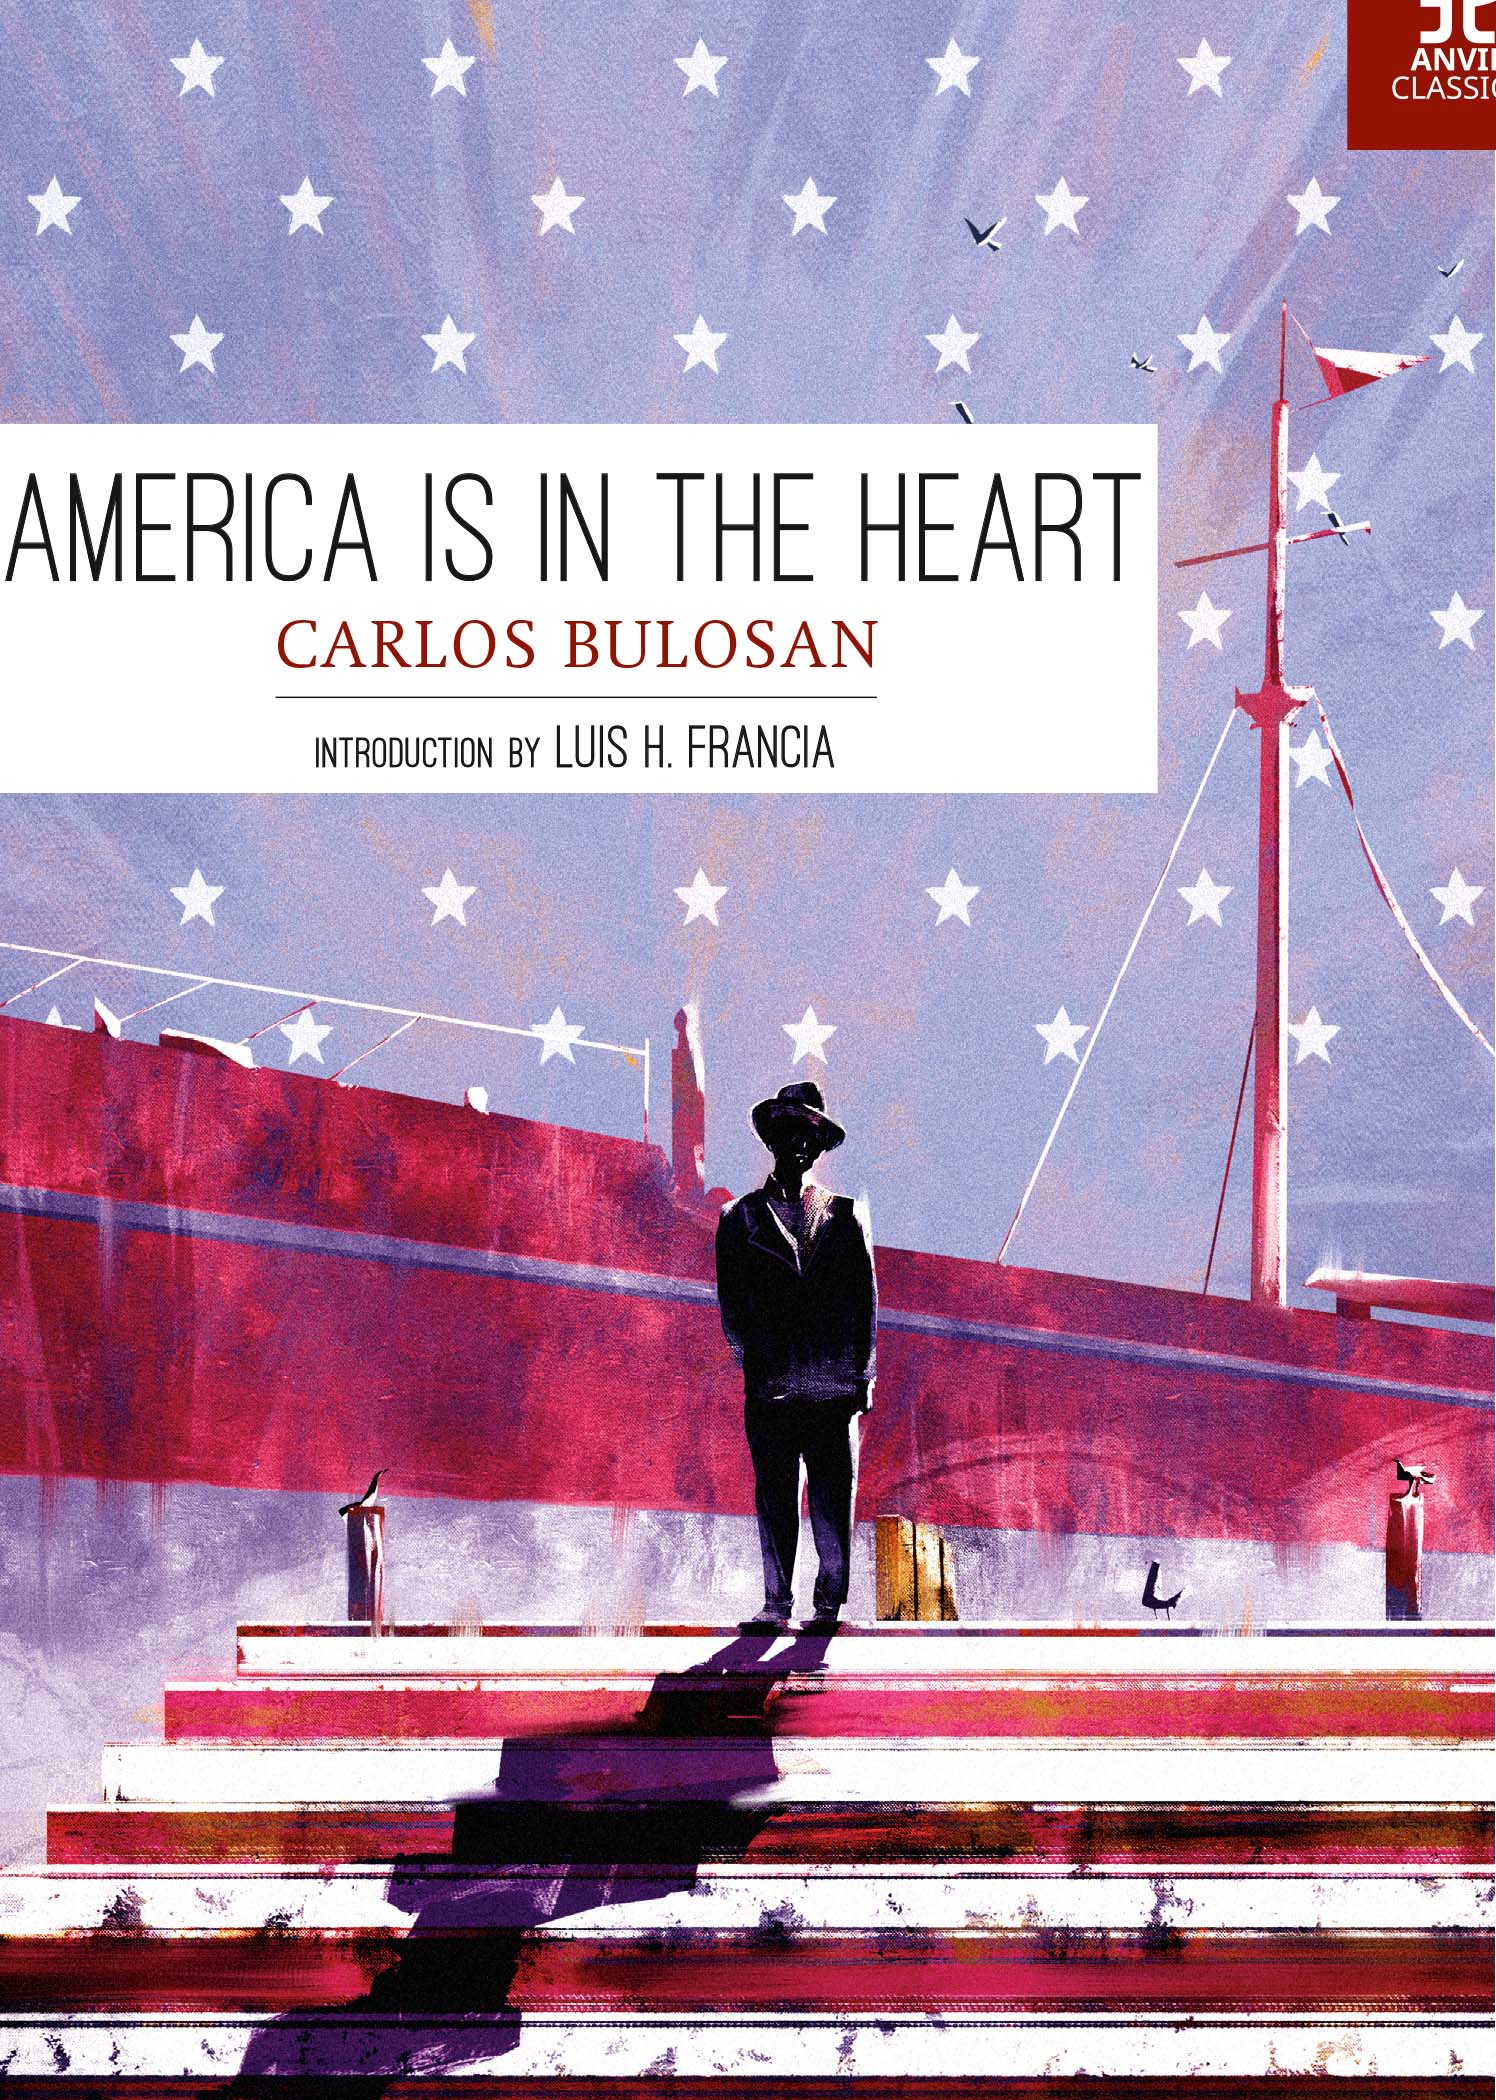 America is in the heart by